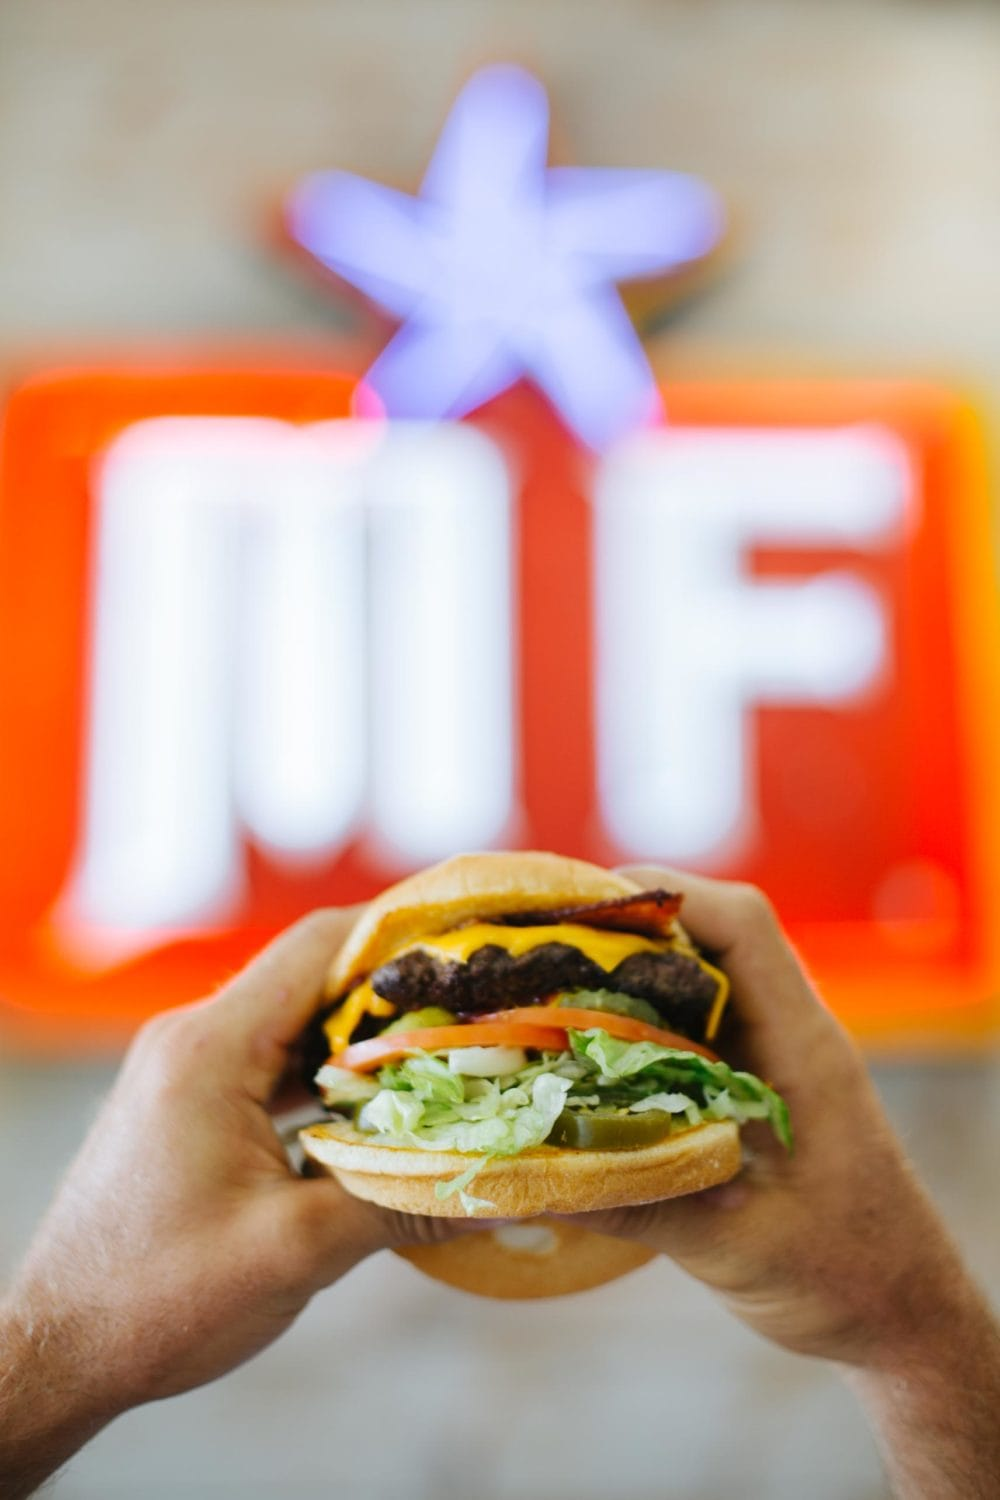 Mighty fine burgers free